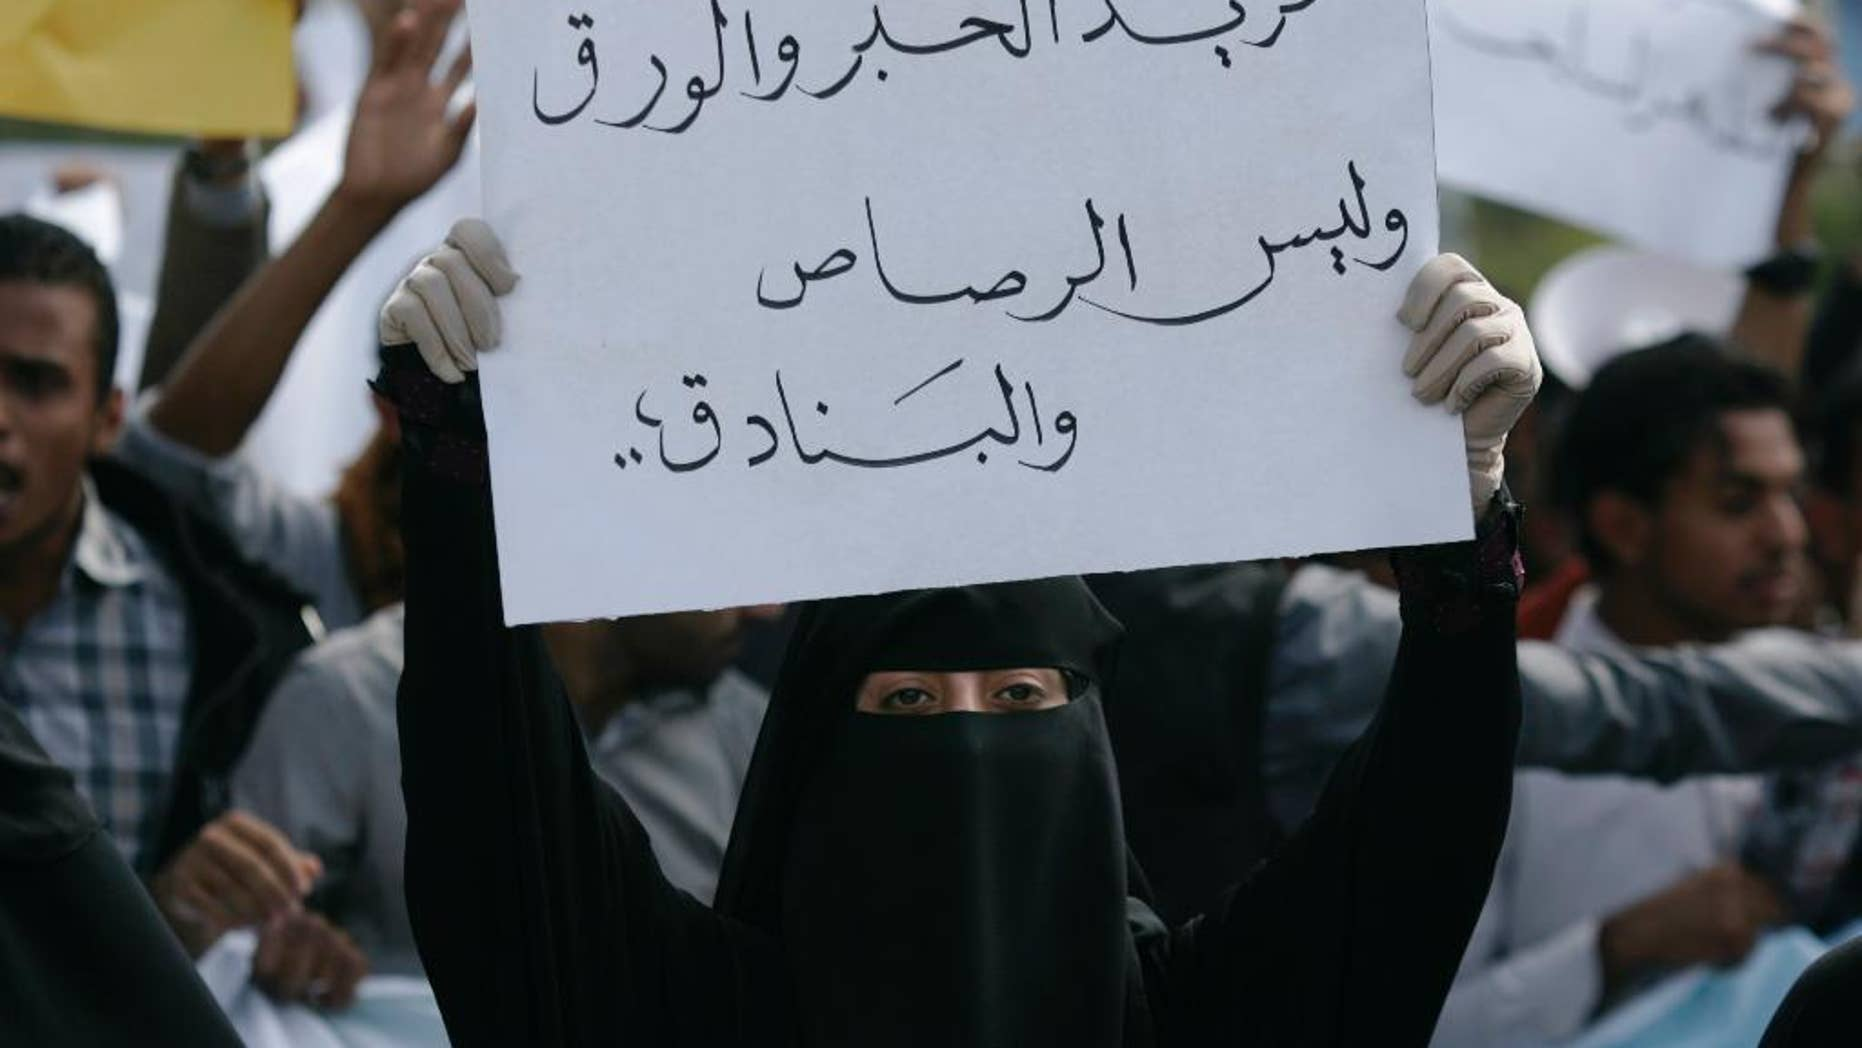 """A student holds a banner with Arabic that reads, """"we want ink and pens not bullets and rifles,"""" to protest against the Shiite insurgency during a rally at the University of Sanaa, Yemen, Tuesday, Nov. 25, 2014. (AP Photo/Hani Mohammed)"""